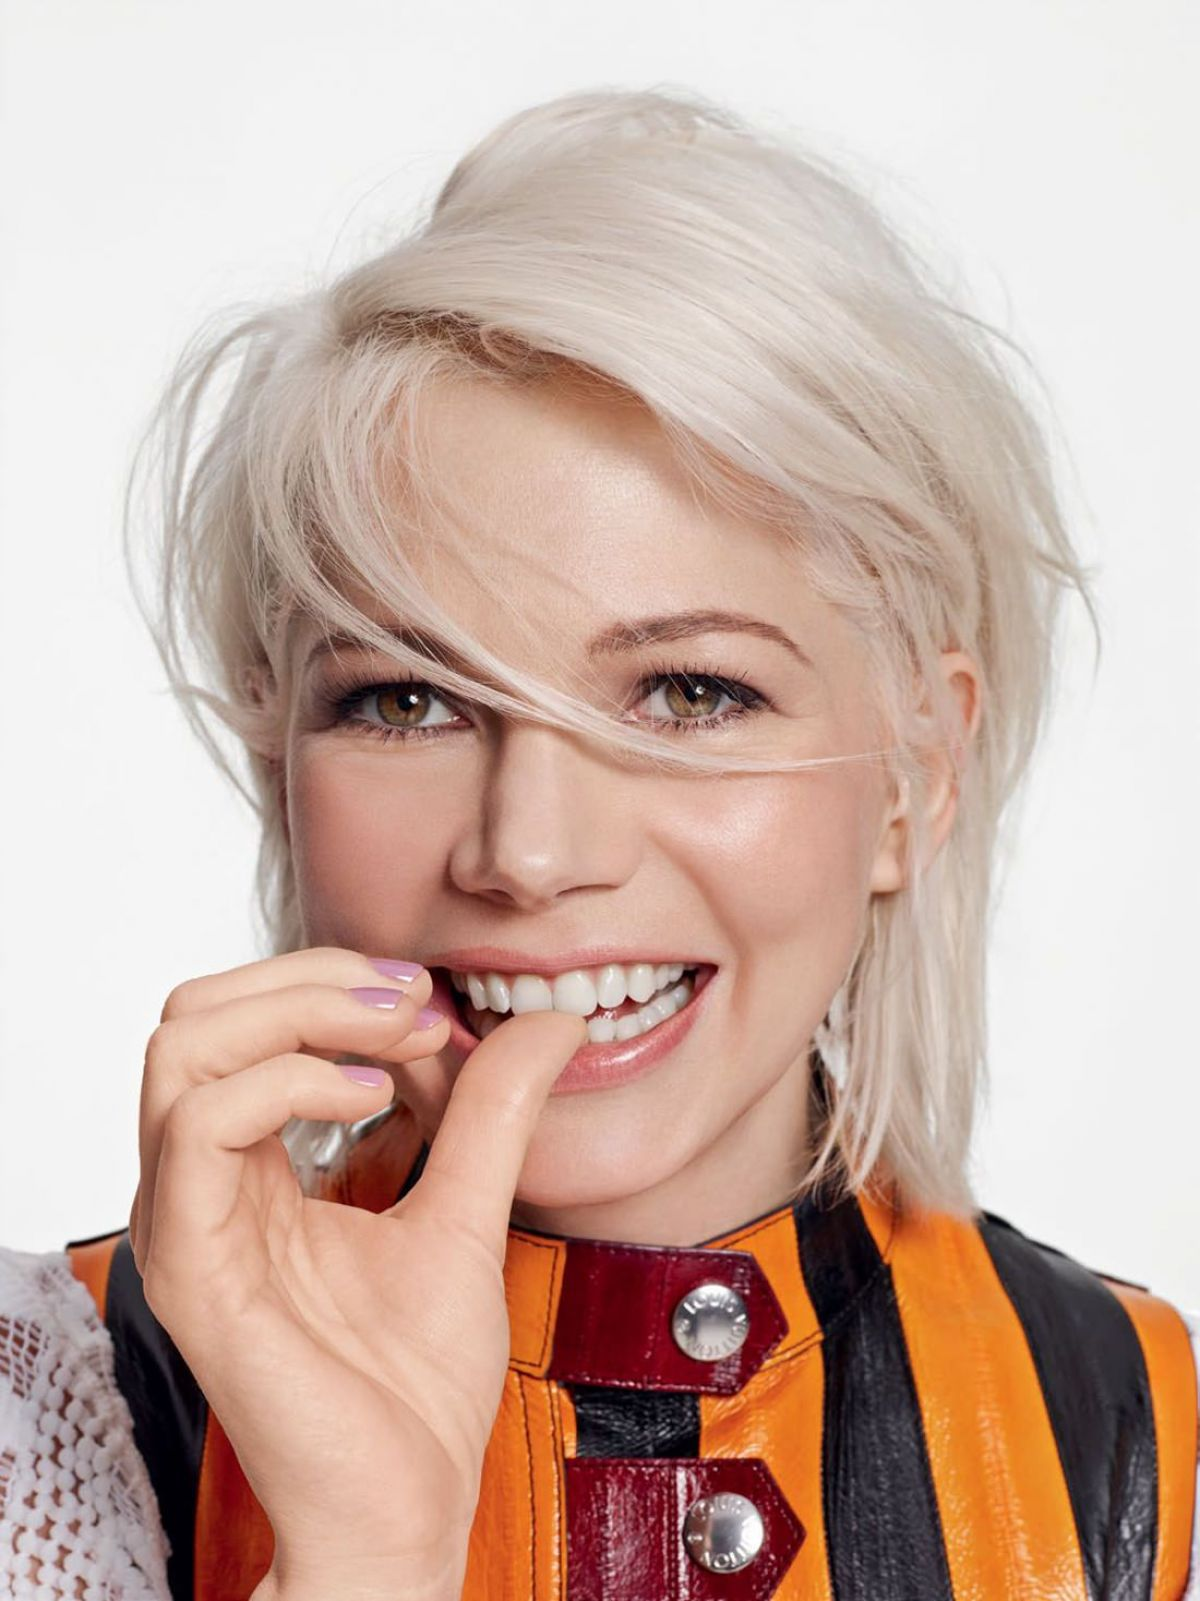 michelle williams - photo #45